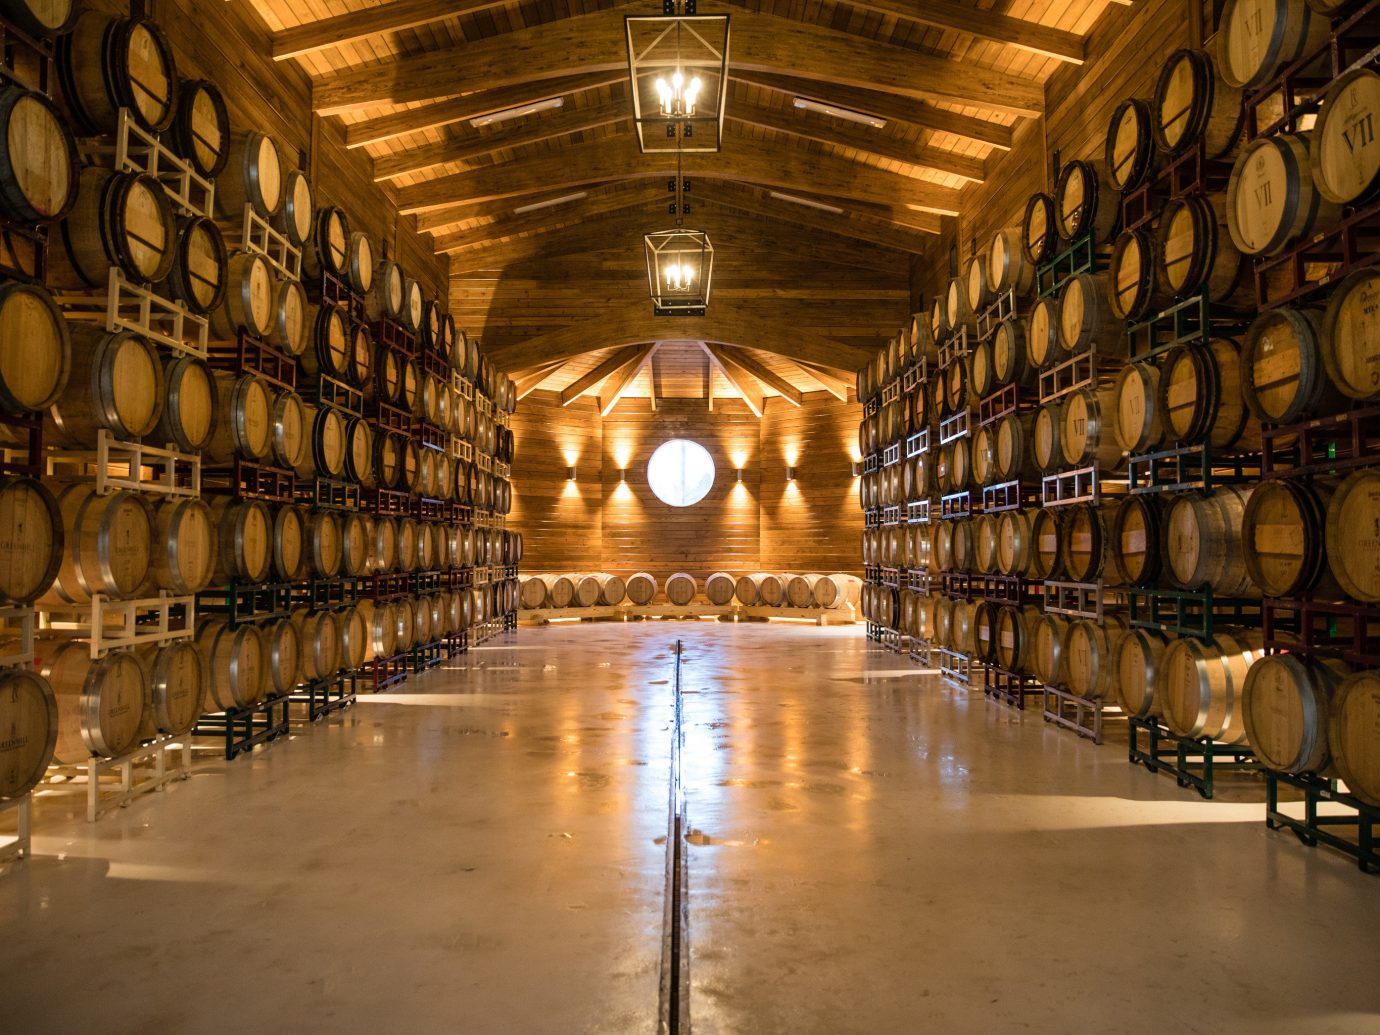 Romance Trip Ideas Weekend Getaways indoor ceiling Winery wine cellar tourist attraction warehouse lots basement long aisle symmetry several lined